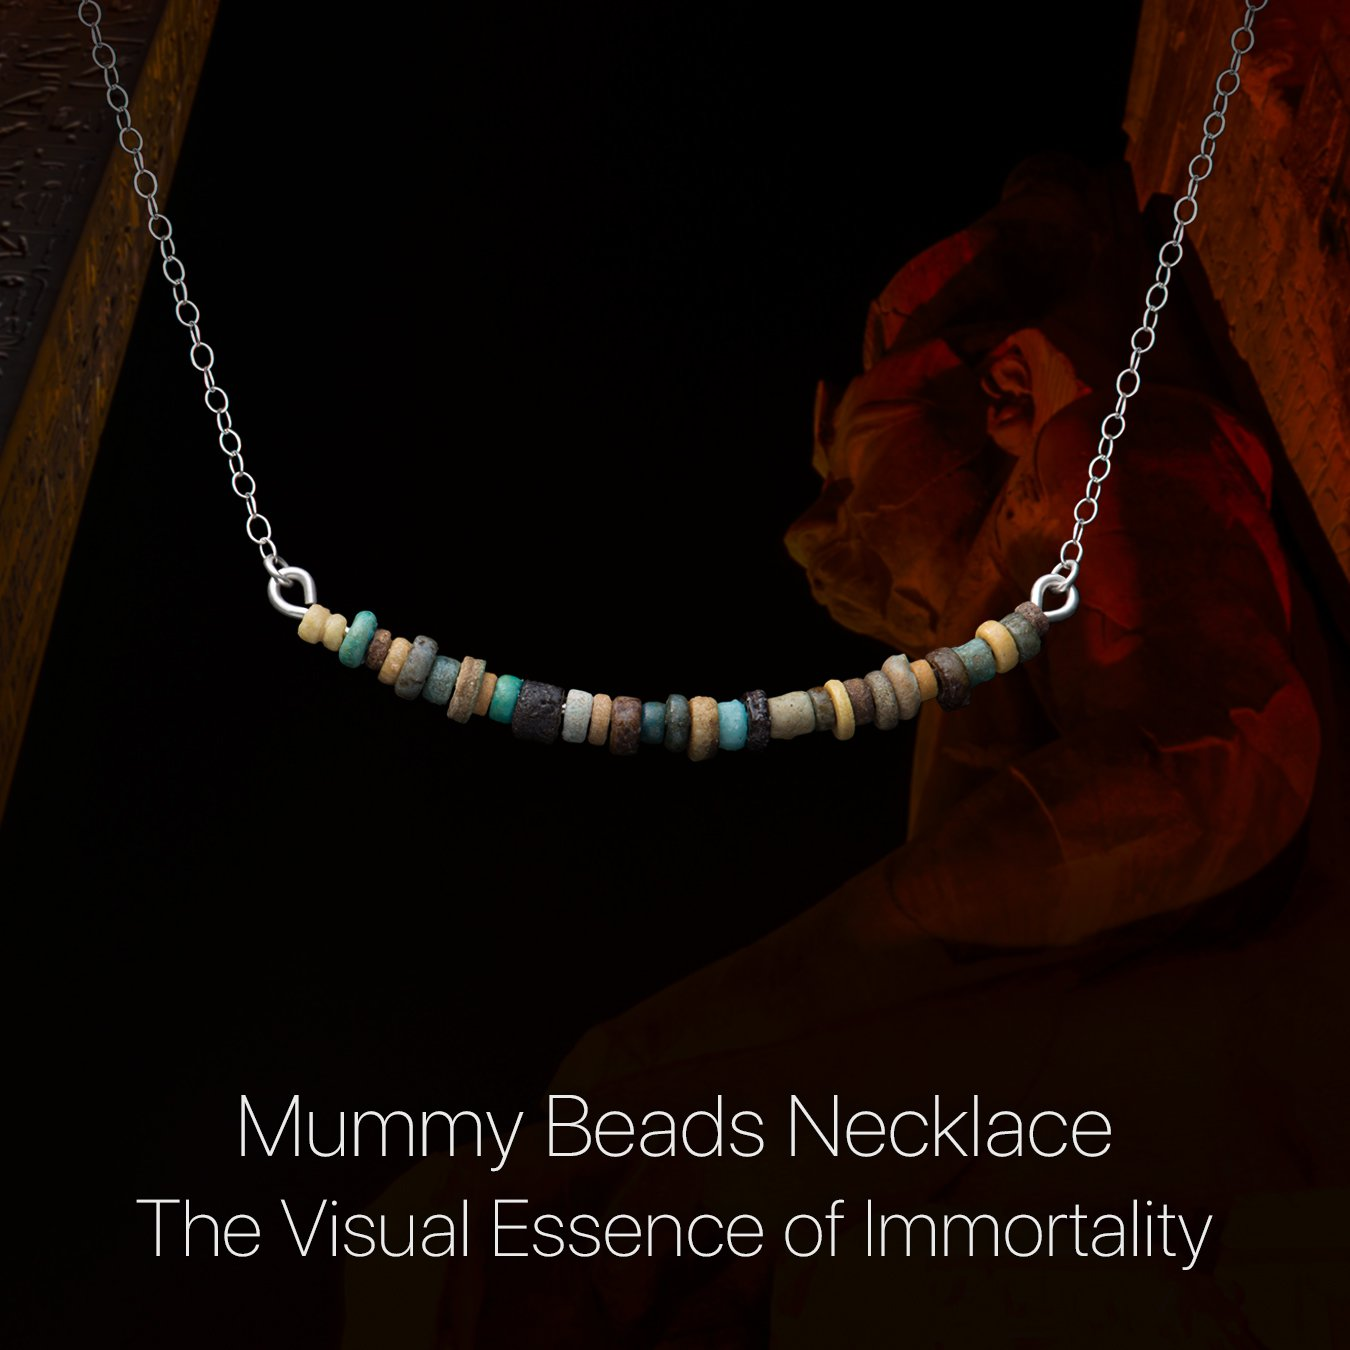 Details about the Mummy Beads Necklace